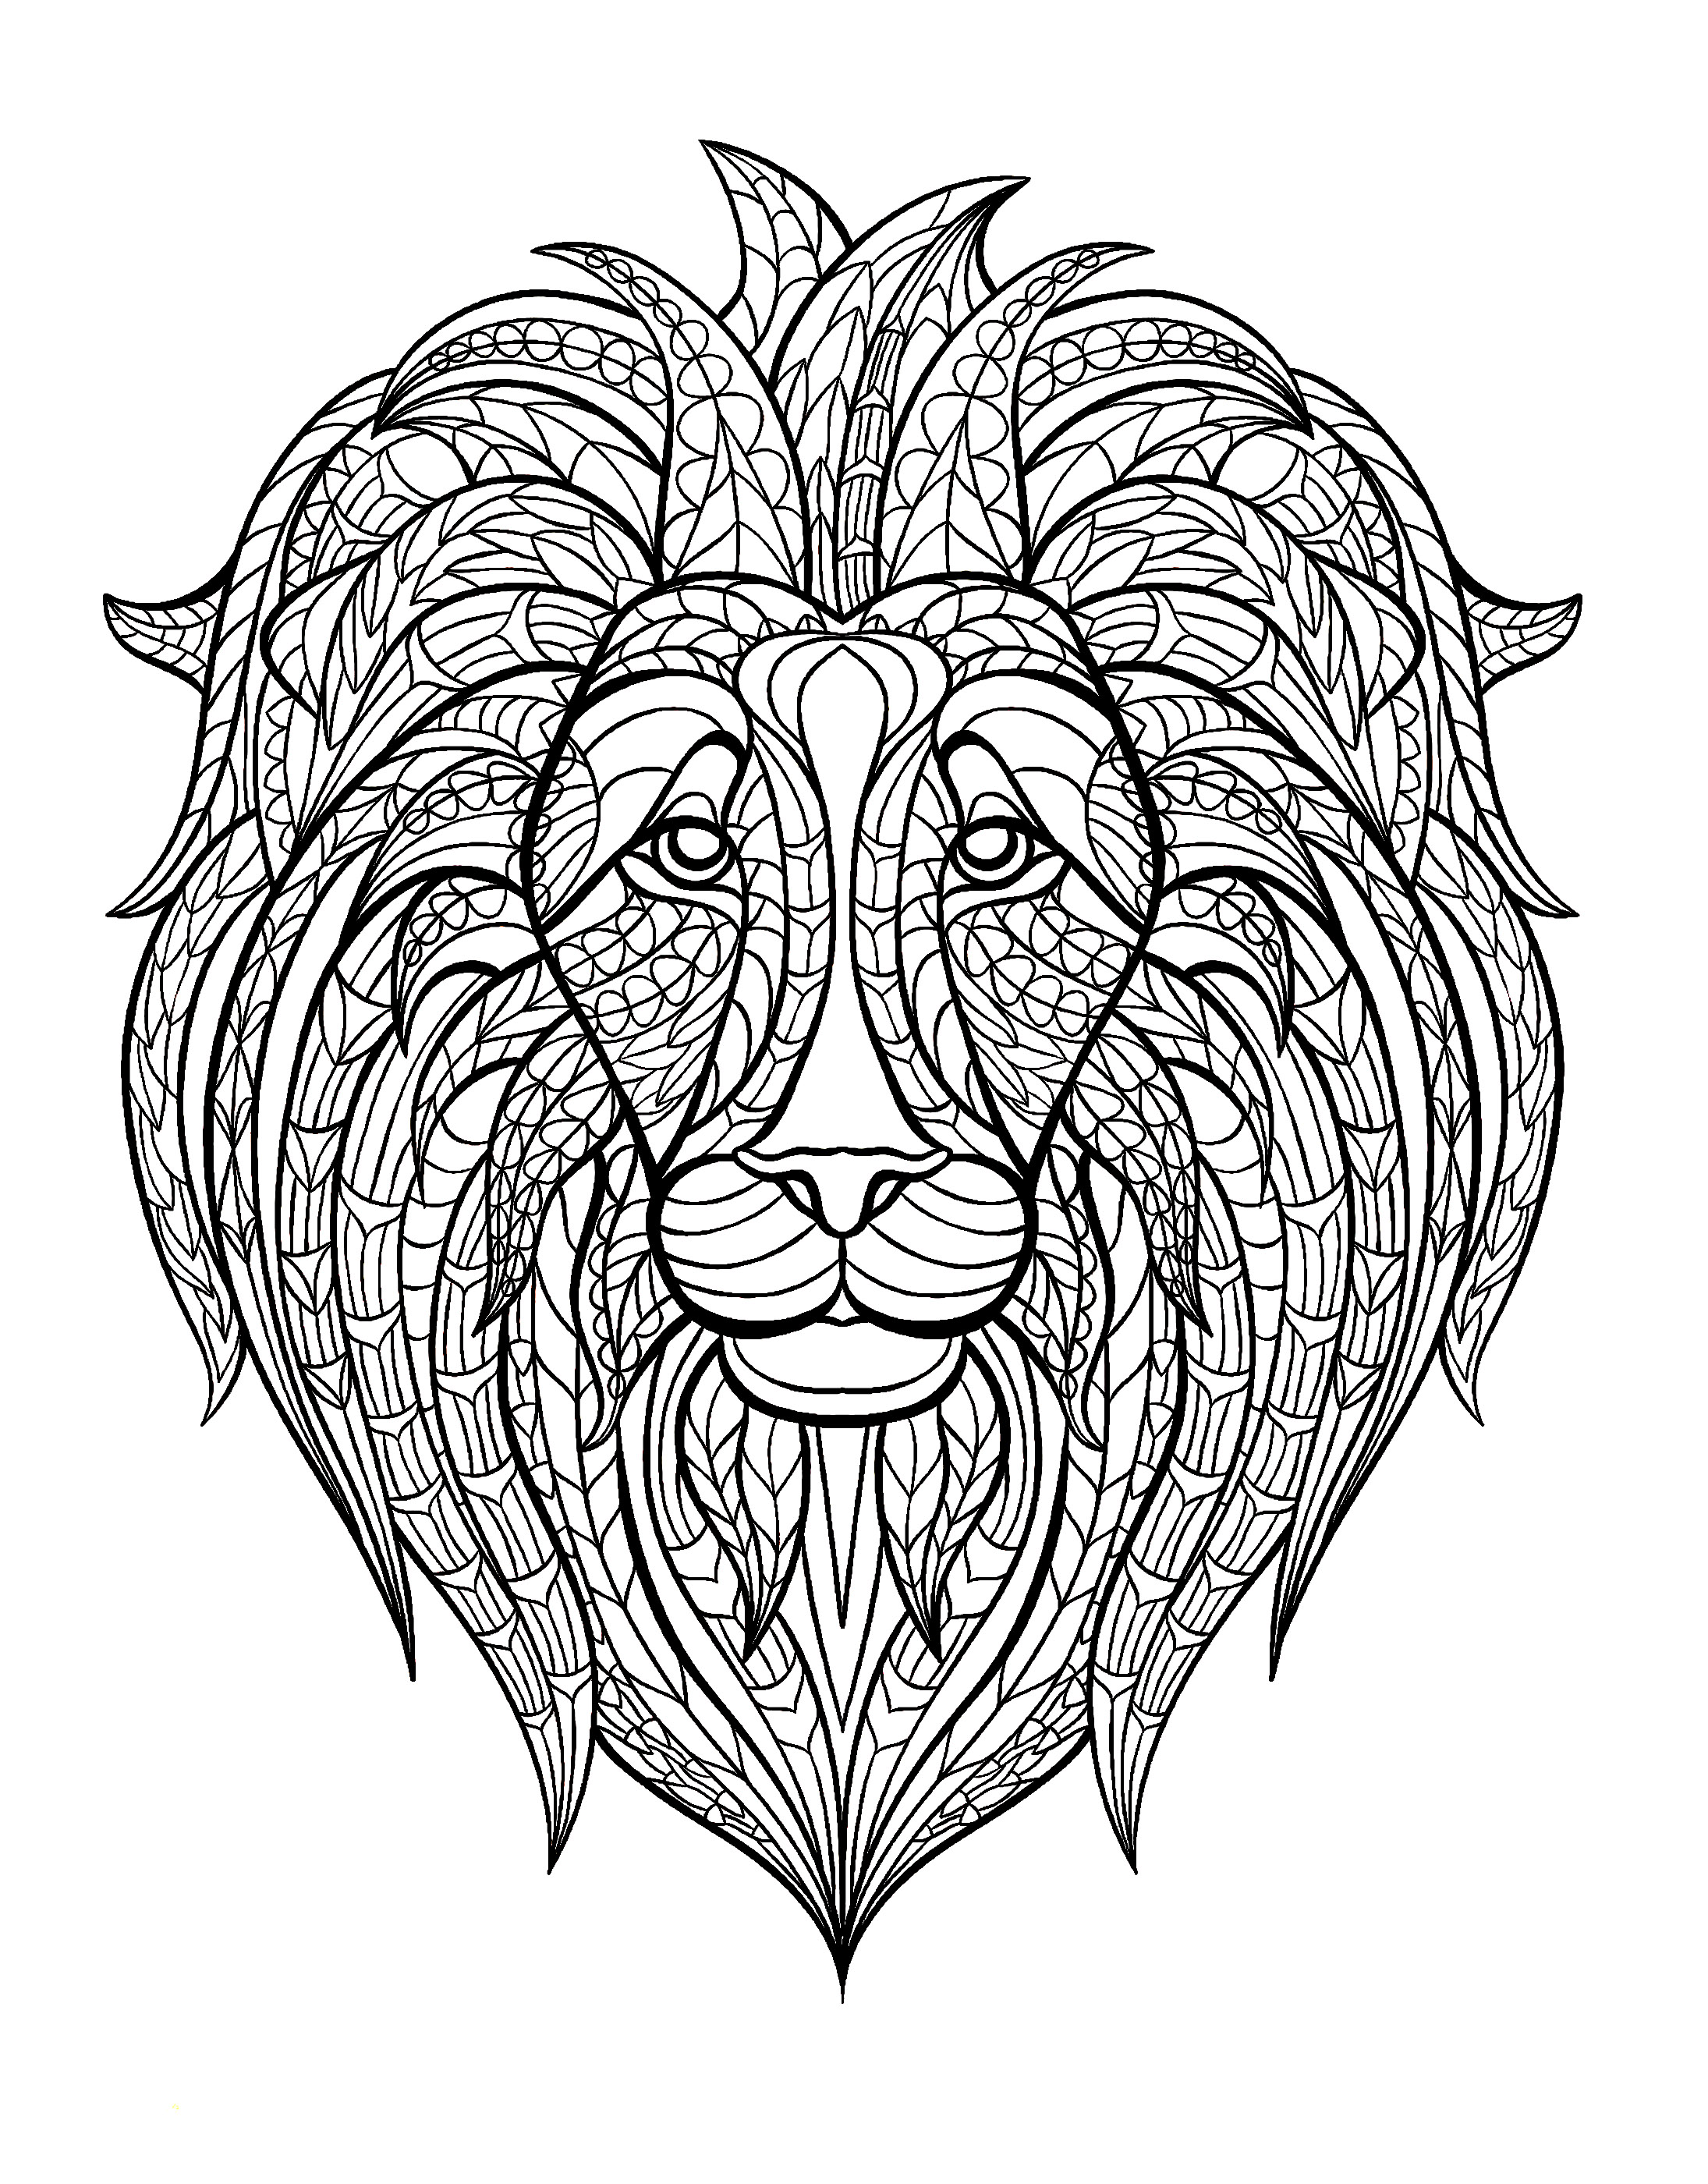 Coloring Pages Coloring Pages Of Animals For Adults animals coloring pages for adults adult lion head headfrom the gallery animals